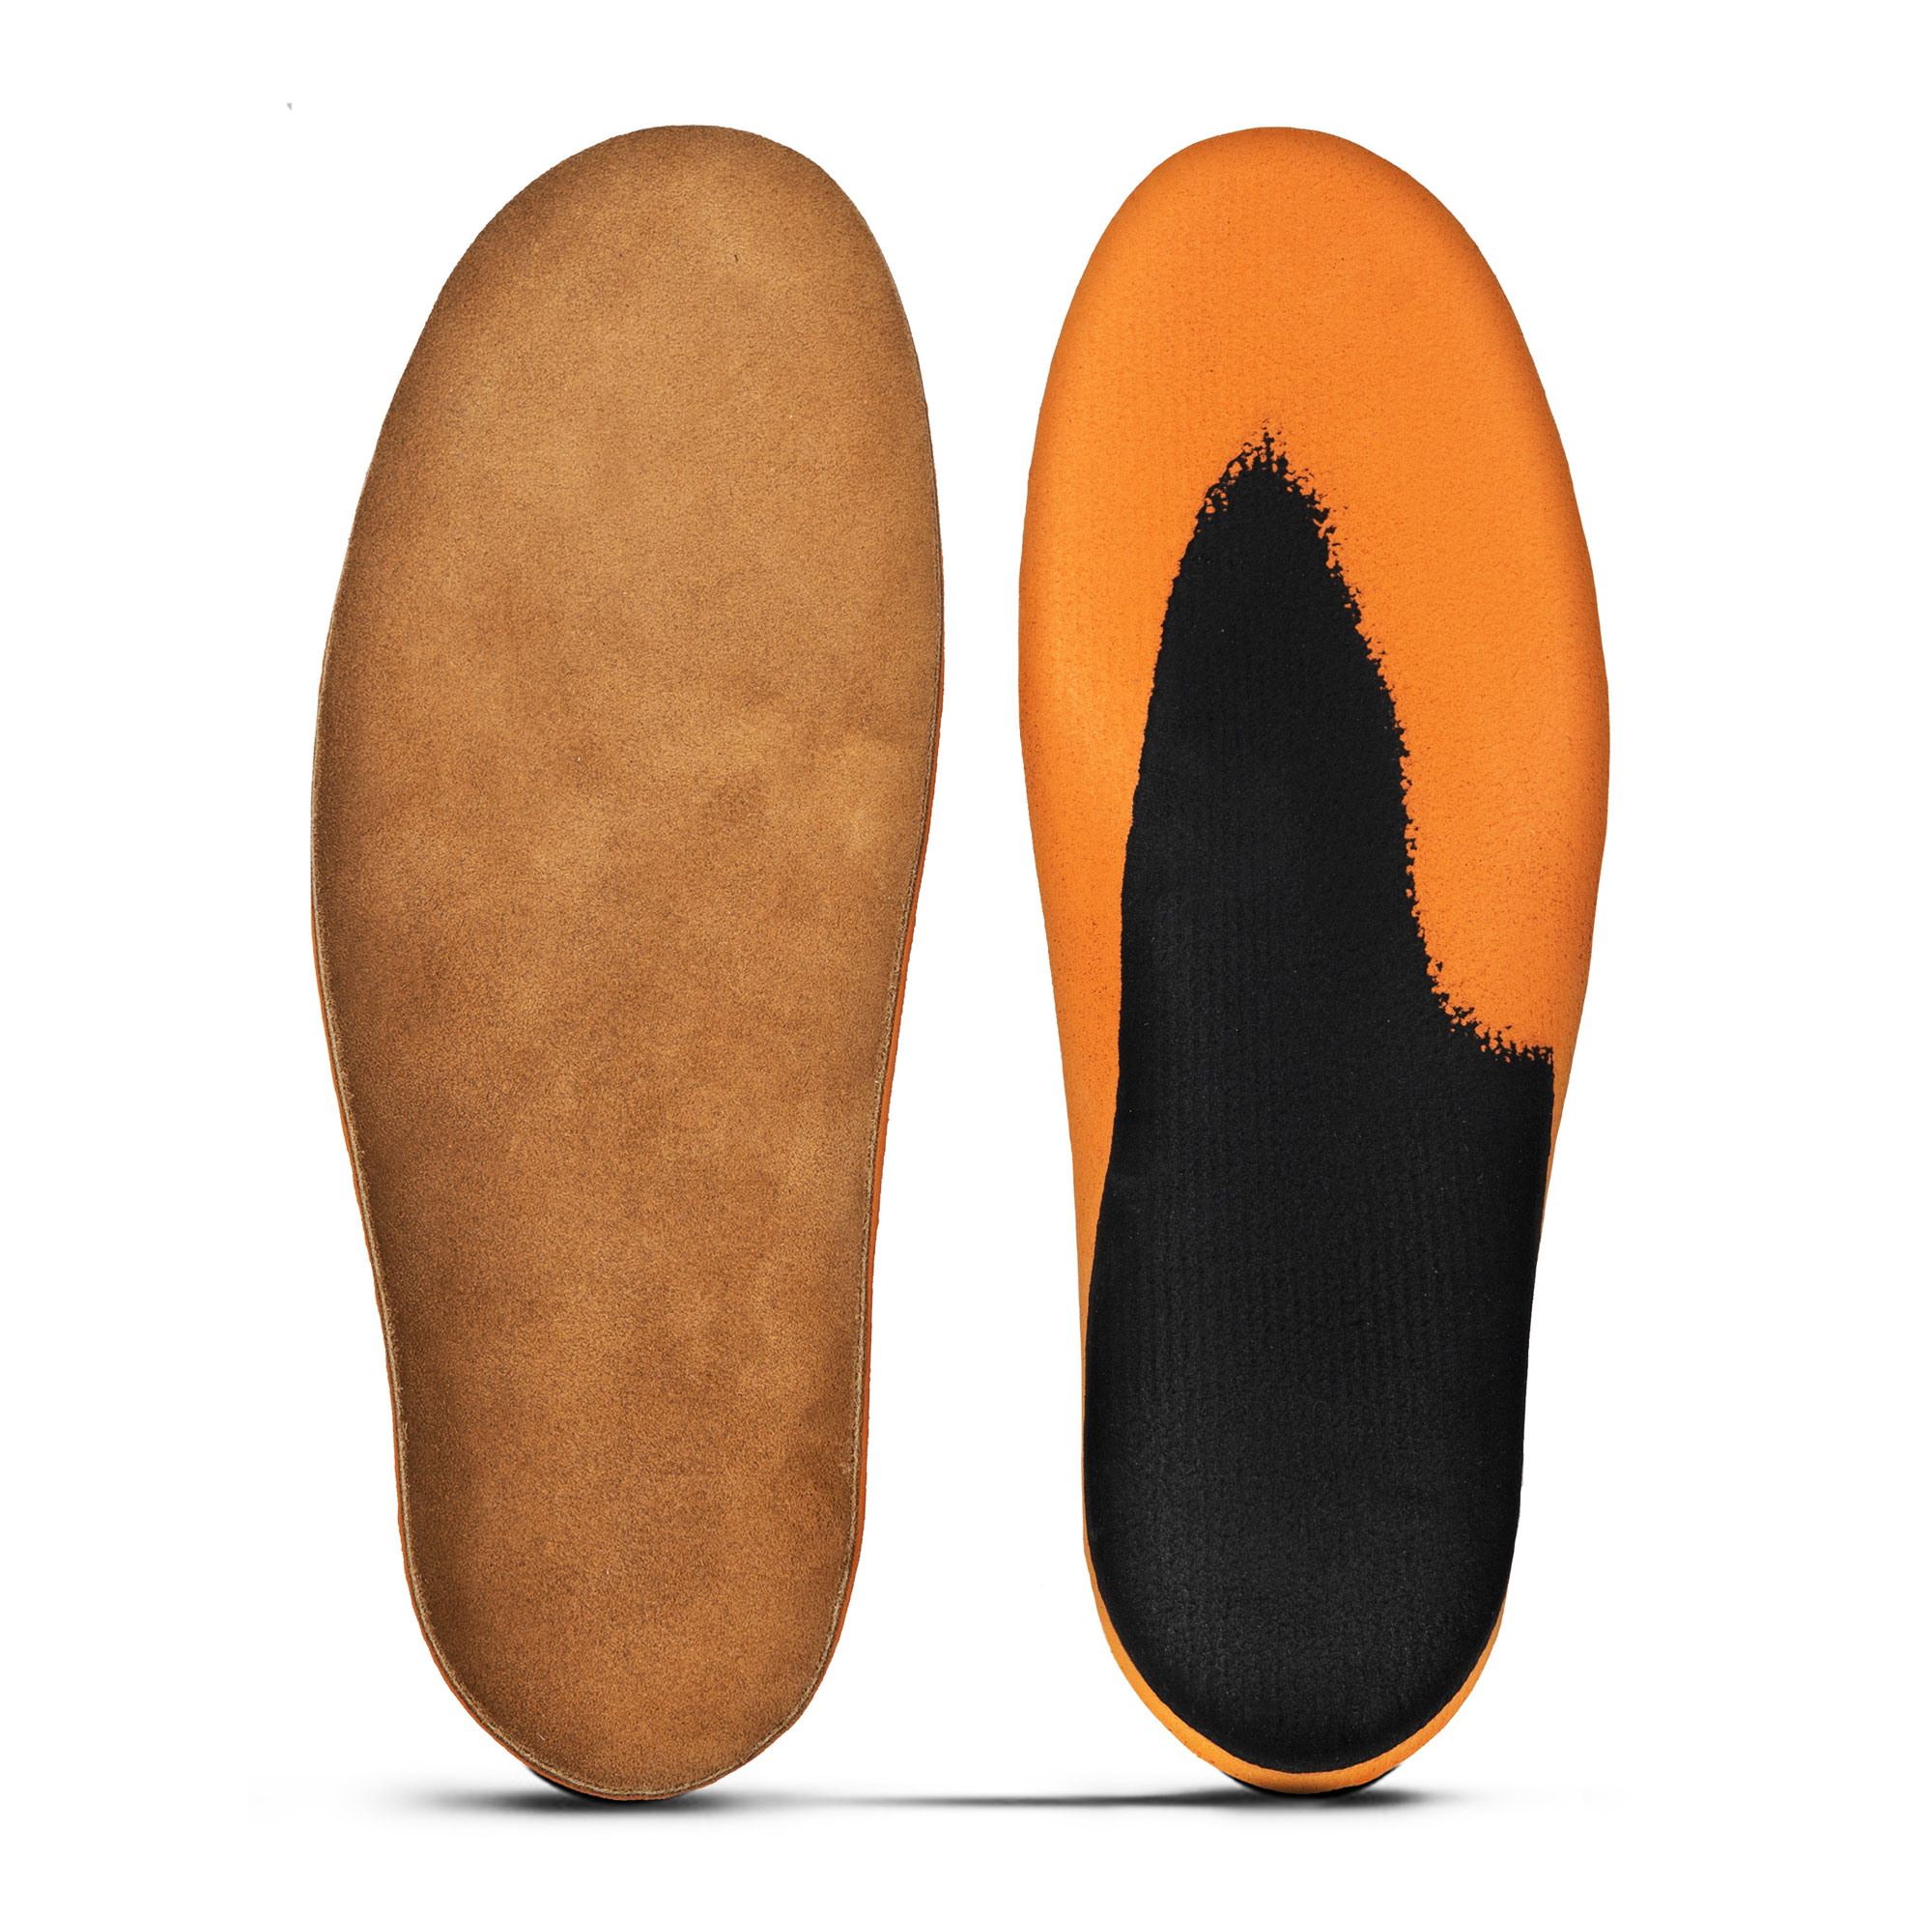 even-keel-custom-insoles-tan-suede-firm-base-flat-lay.jpg